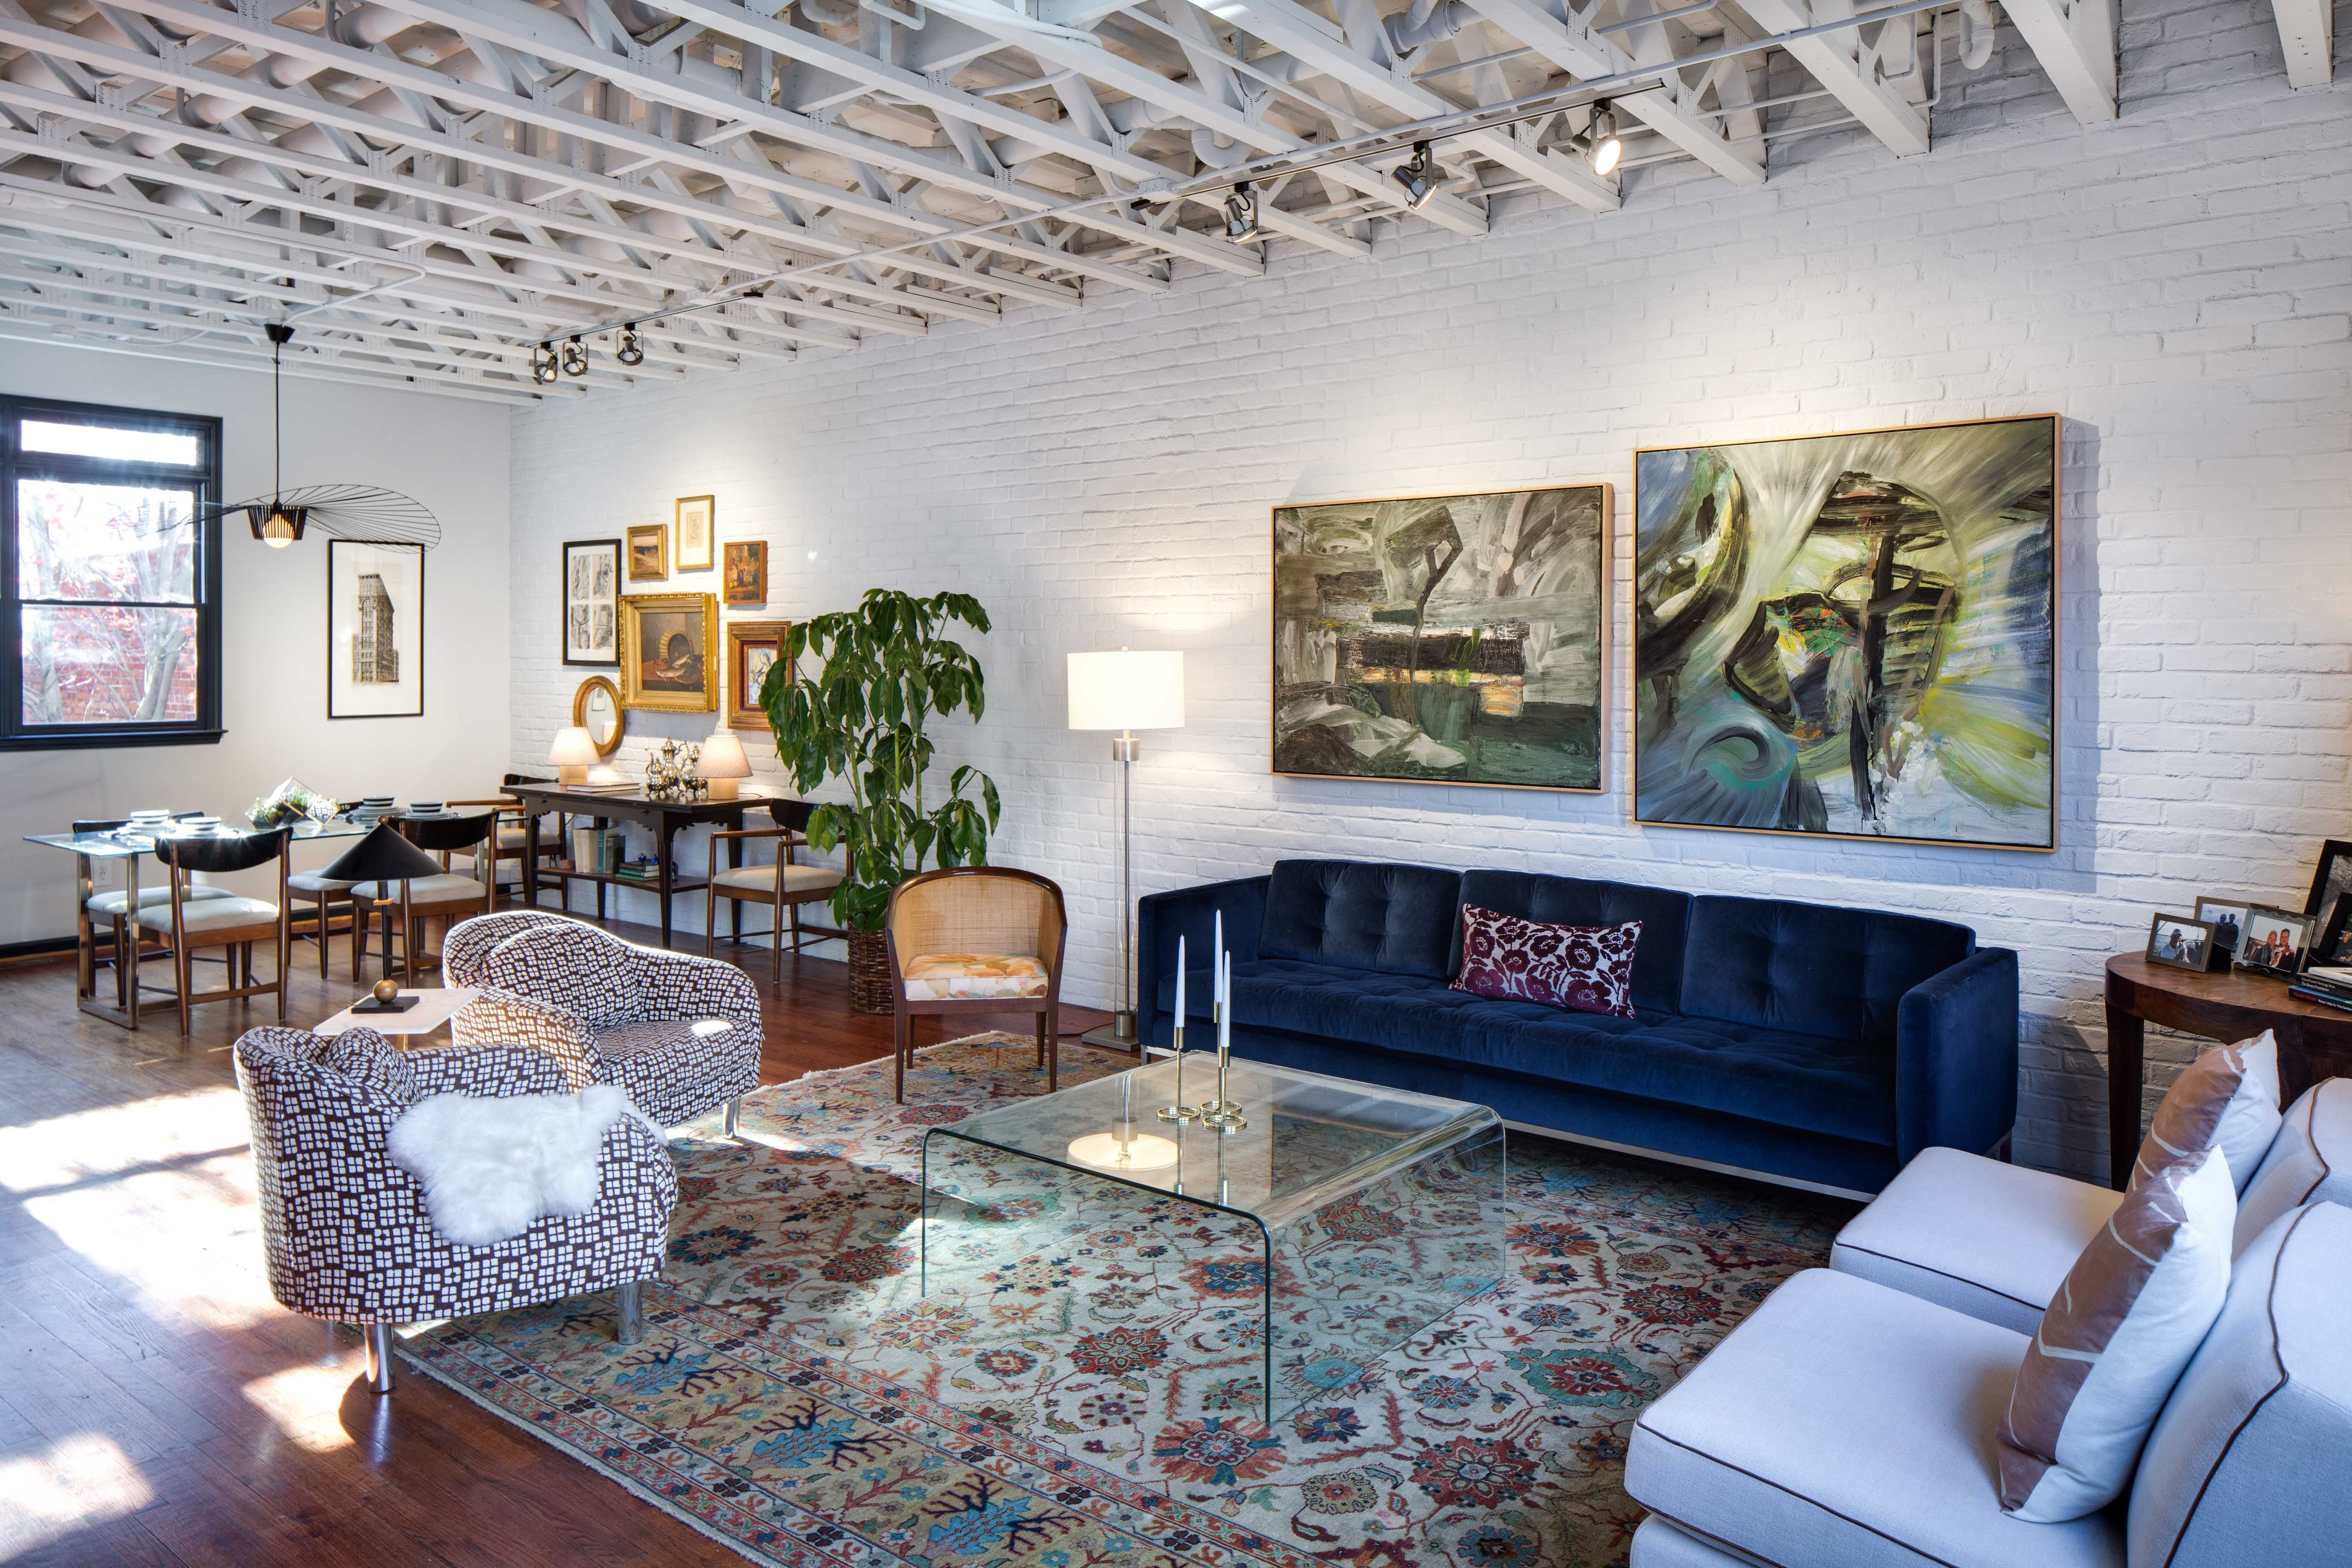 BehindtheScenes of an Atlanta Loft (With images) Home